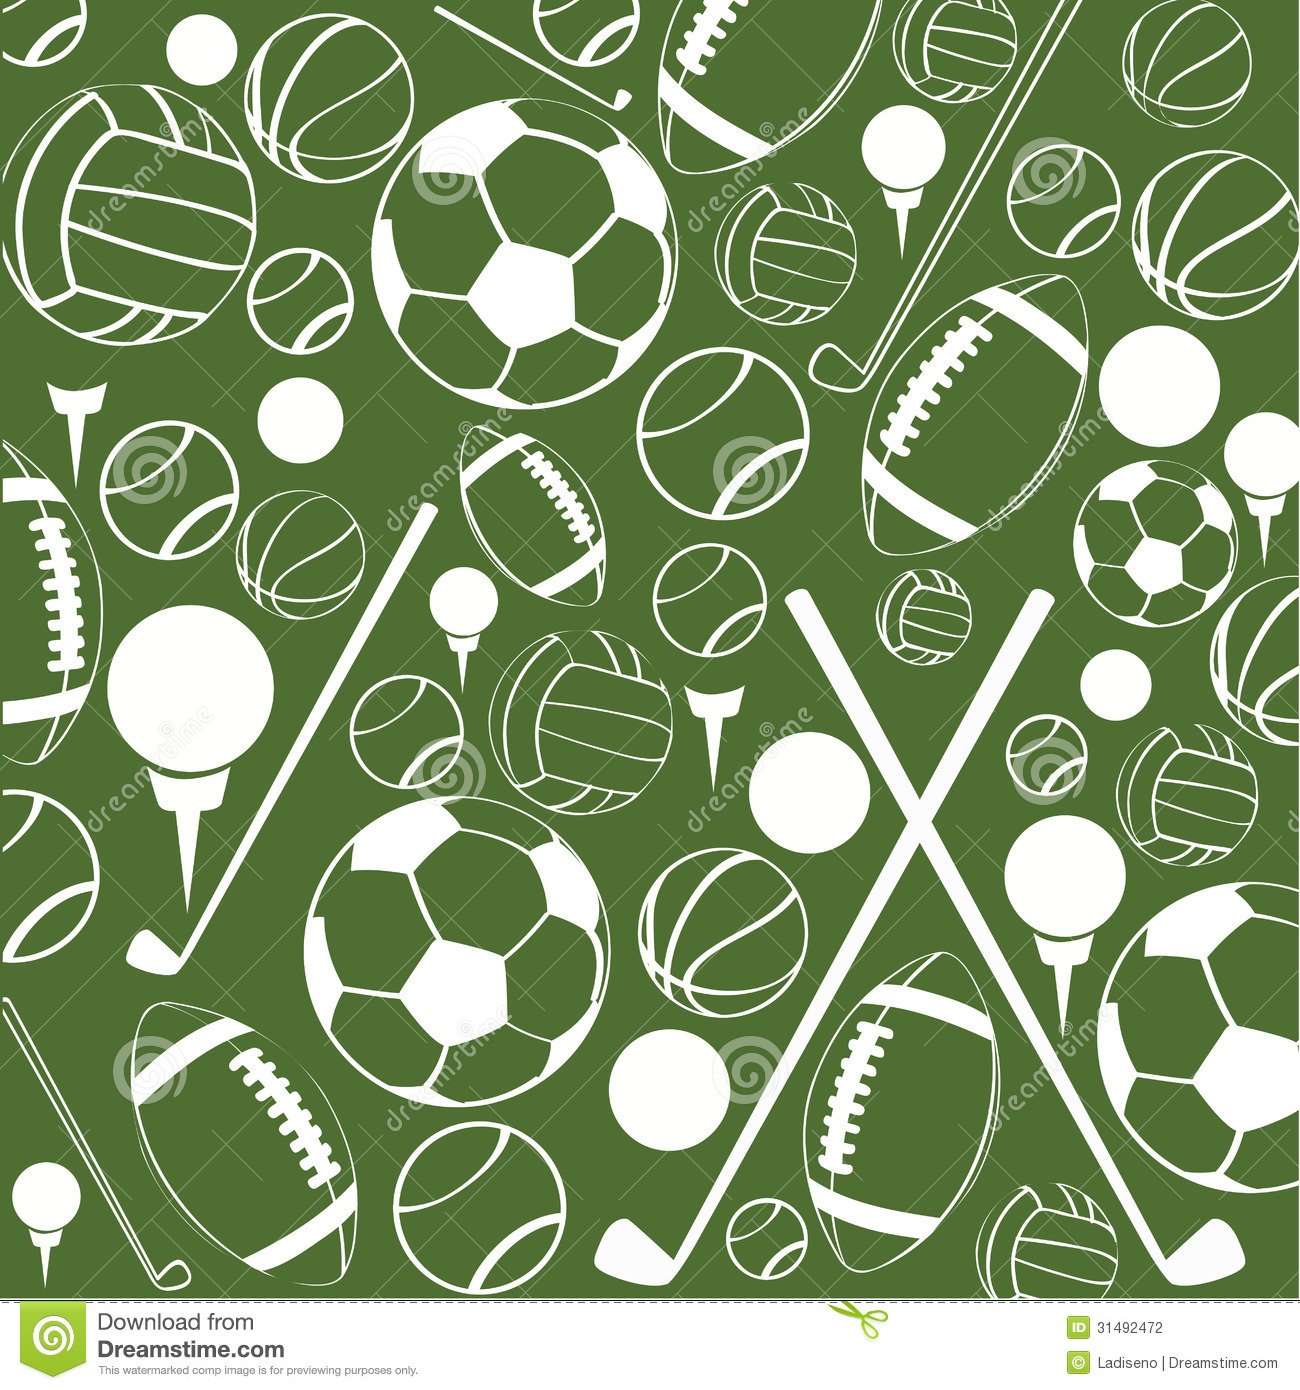 Sport background stock vector. Image of image, volleyball ... Soccer Backgrounds For Photography